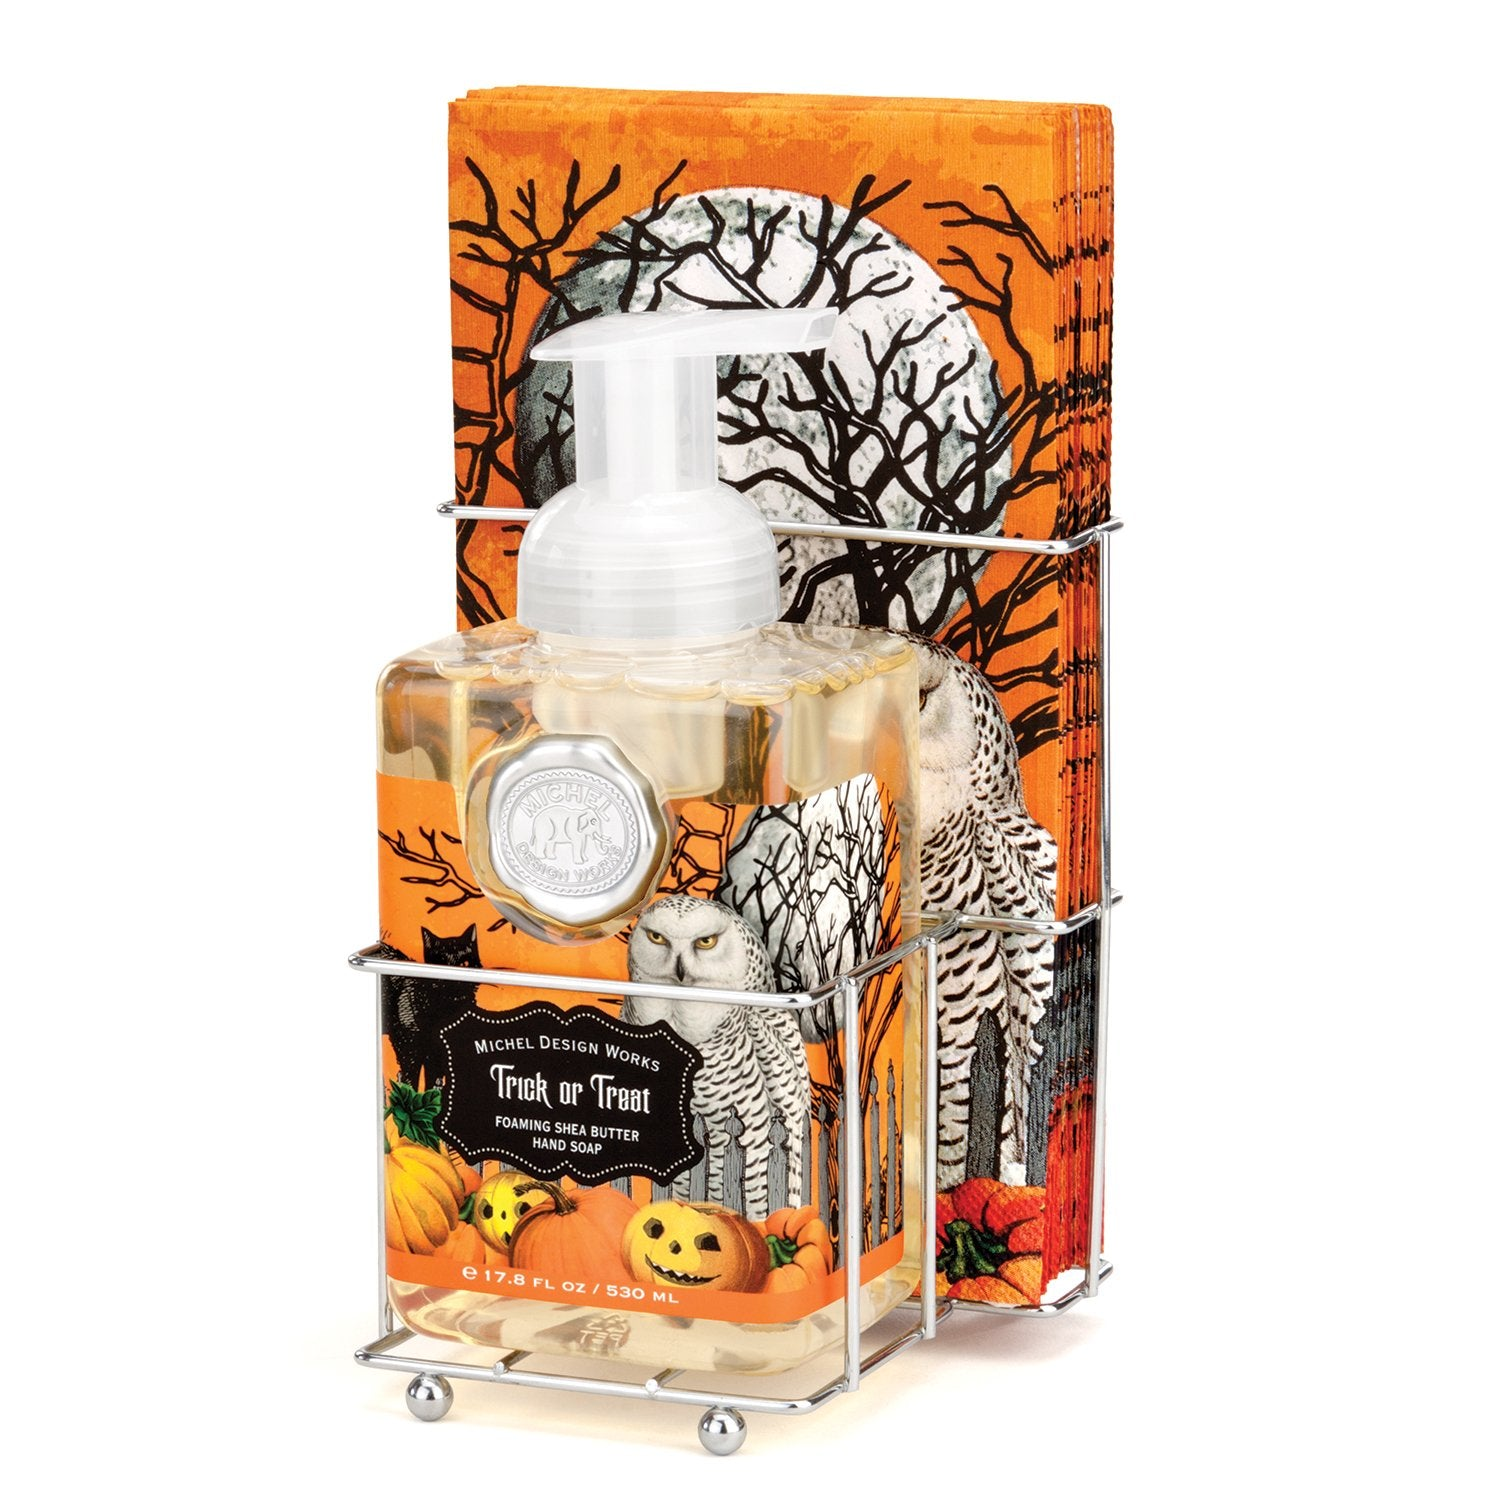 Trick or Treat Foaming Hand Soap Napkin Set